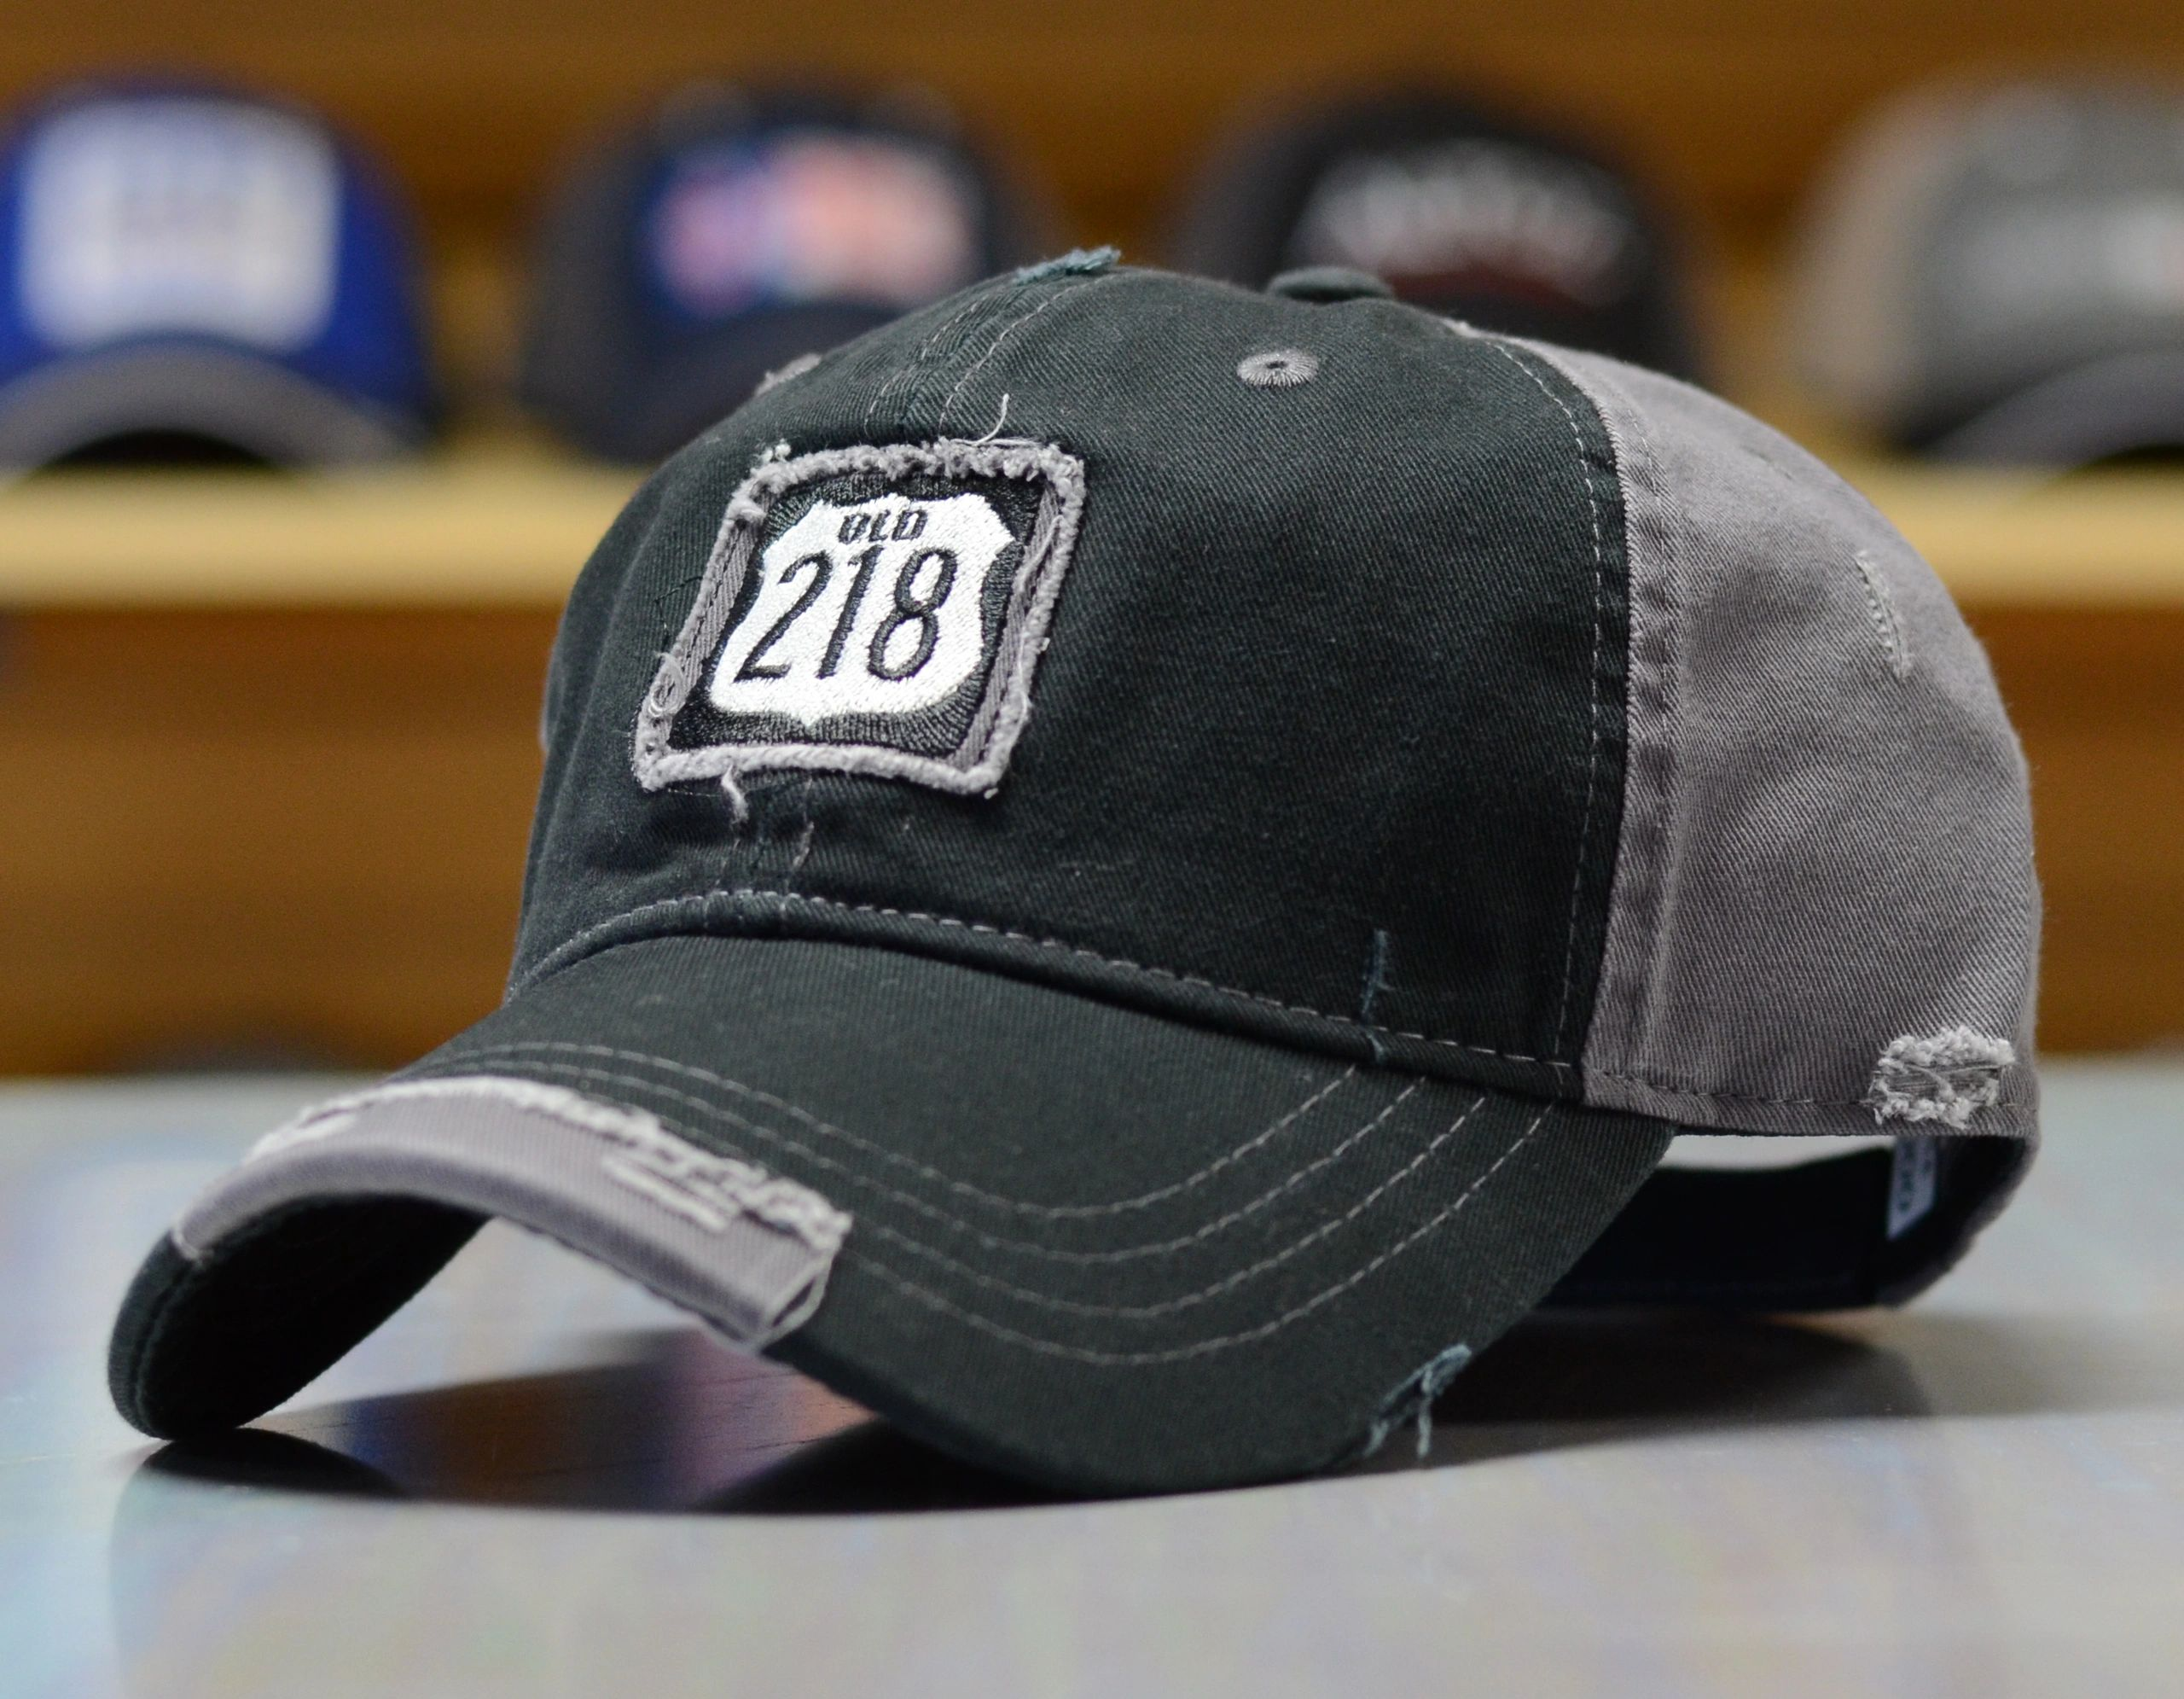 embroidered cap,distressed cap,decorated cap,old 218,patch hat,my logo on cap hat,richardson cap